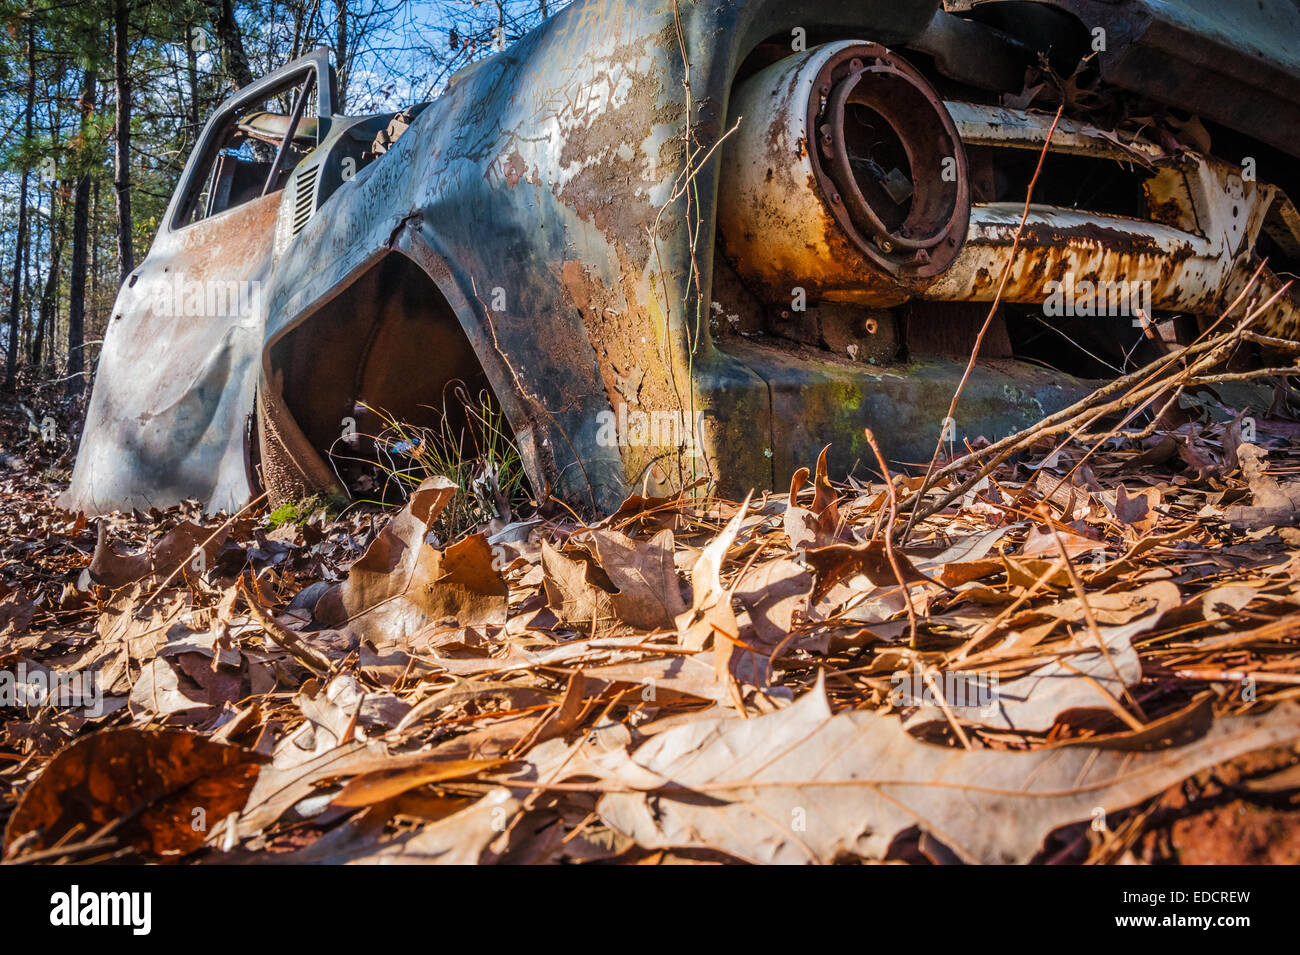 Old, abandoned car along a hiking trail at Providence Canyon State Park in Lumpkin, Georgia, USA. - Stock Image